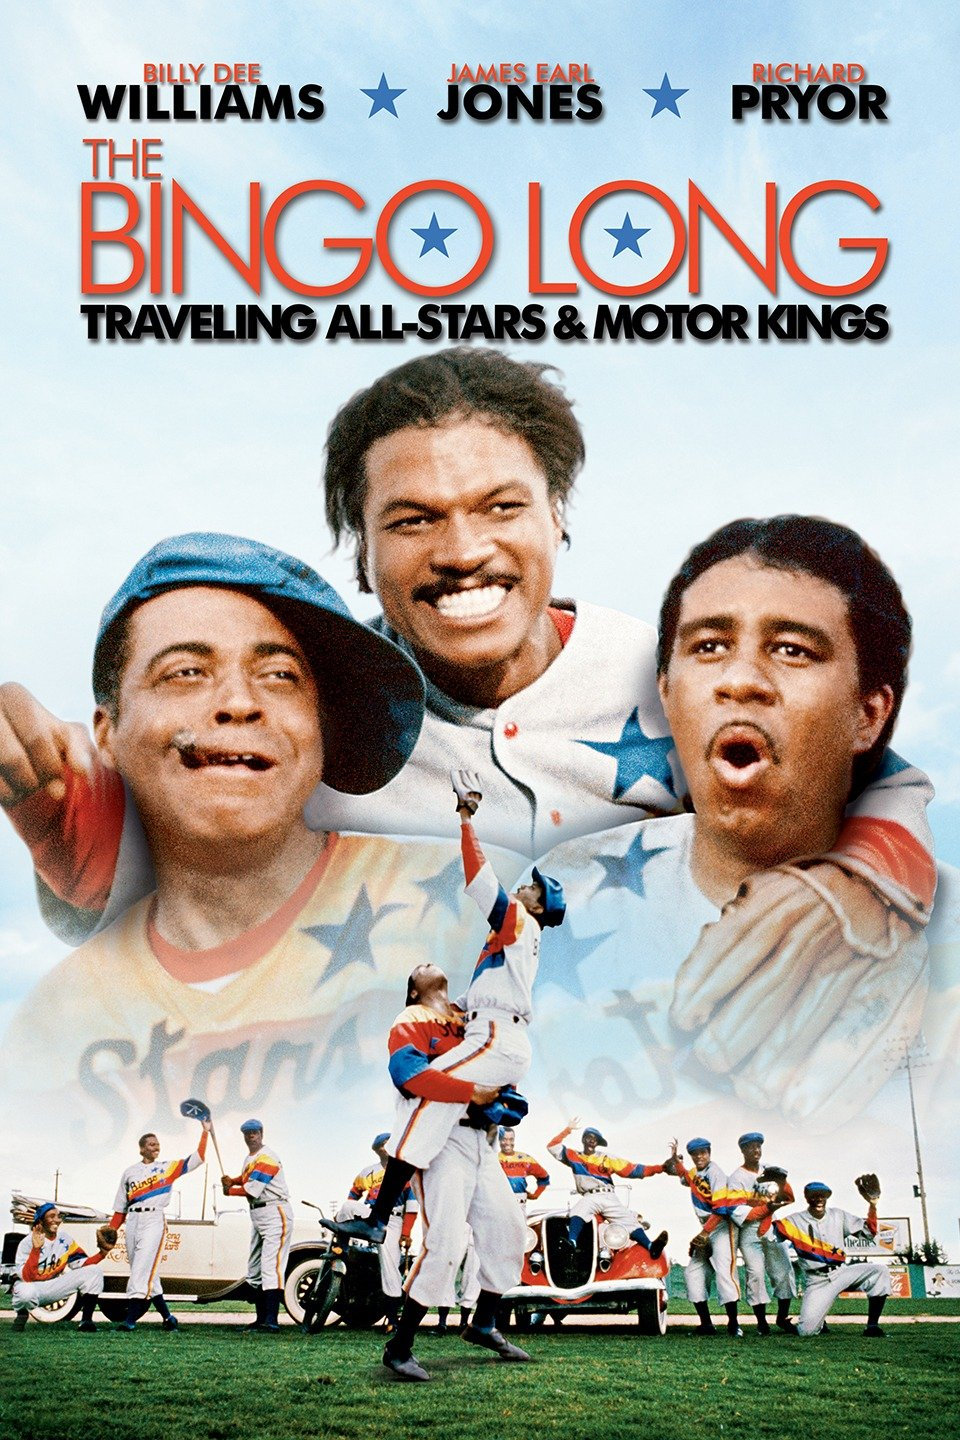 best baseball movies - bingo stars